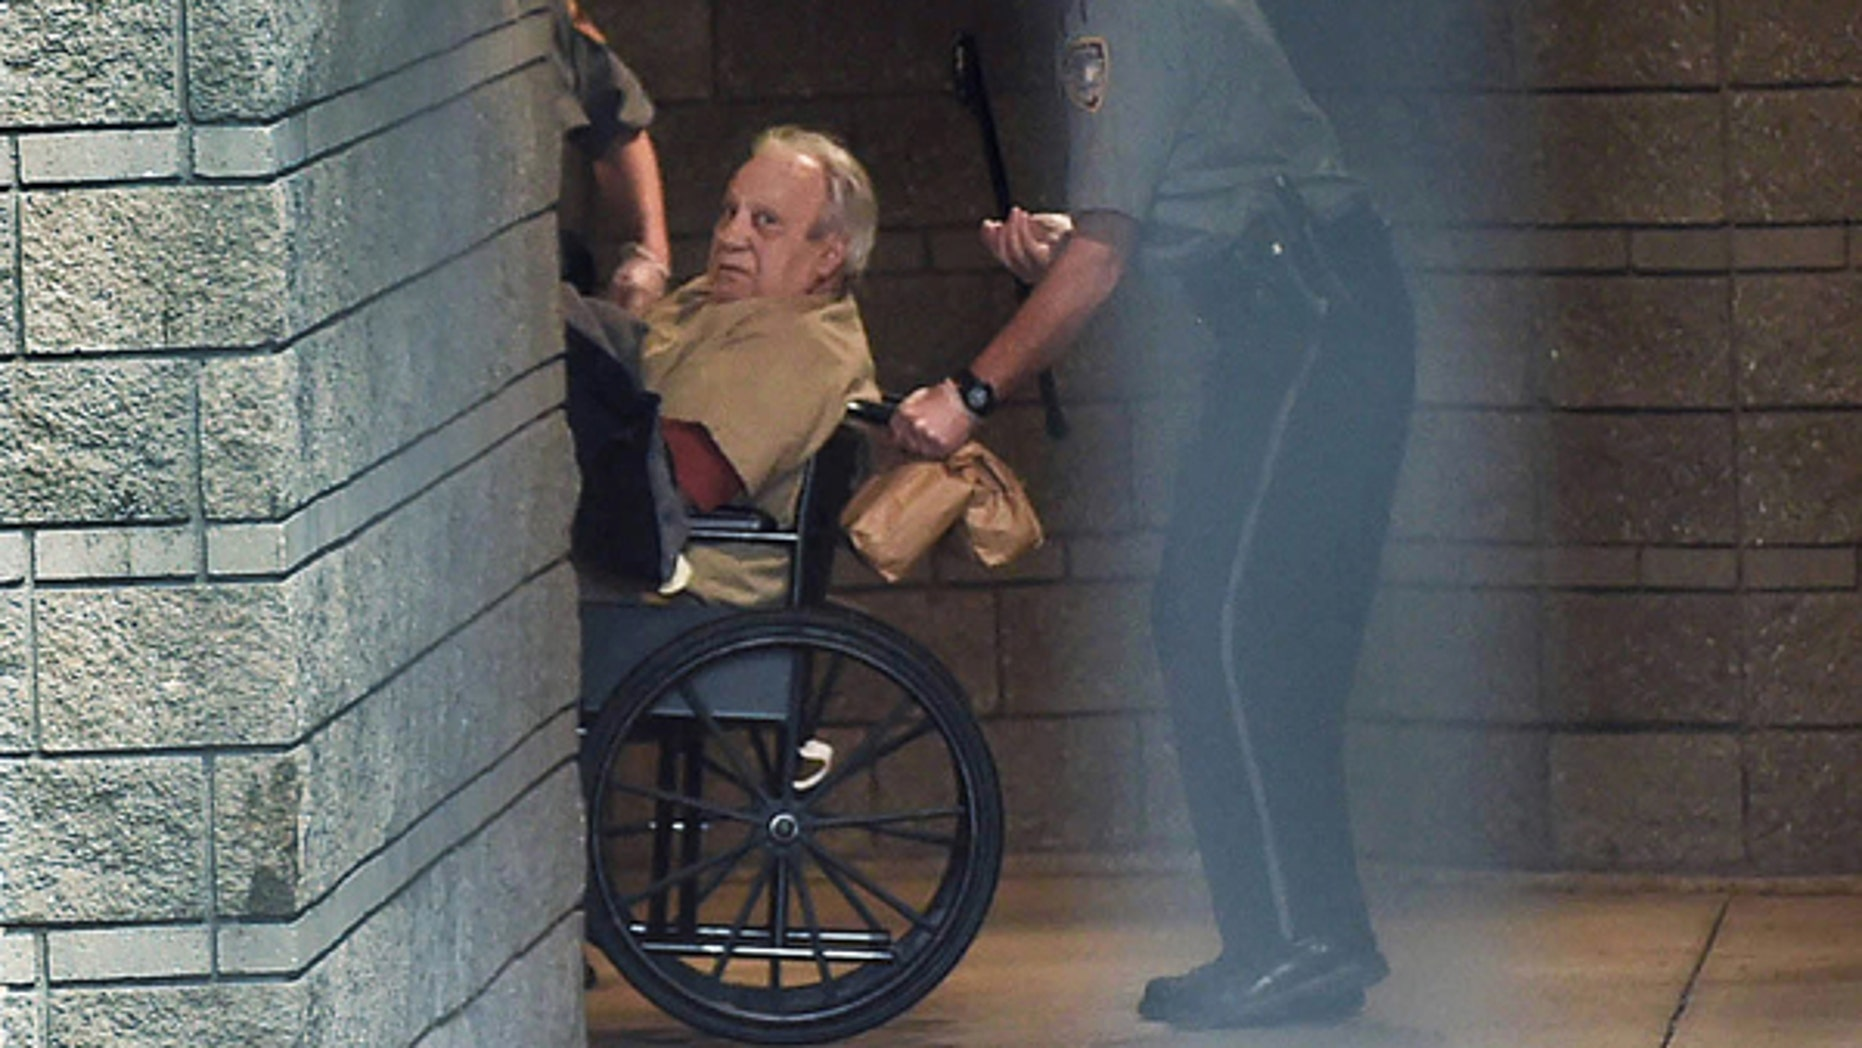 FILE 2015: Robert Gentile is brought into the federal courthouse in a wheelchair for a continuation of a hearing in Hartford, Conn.